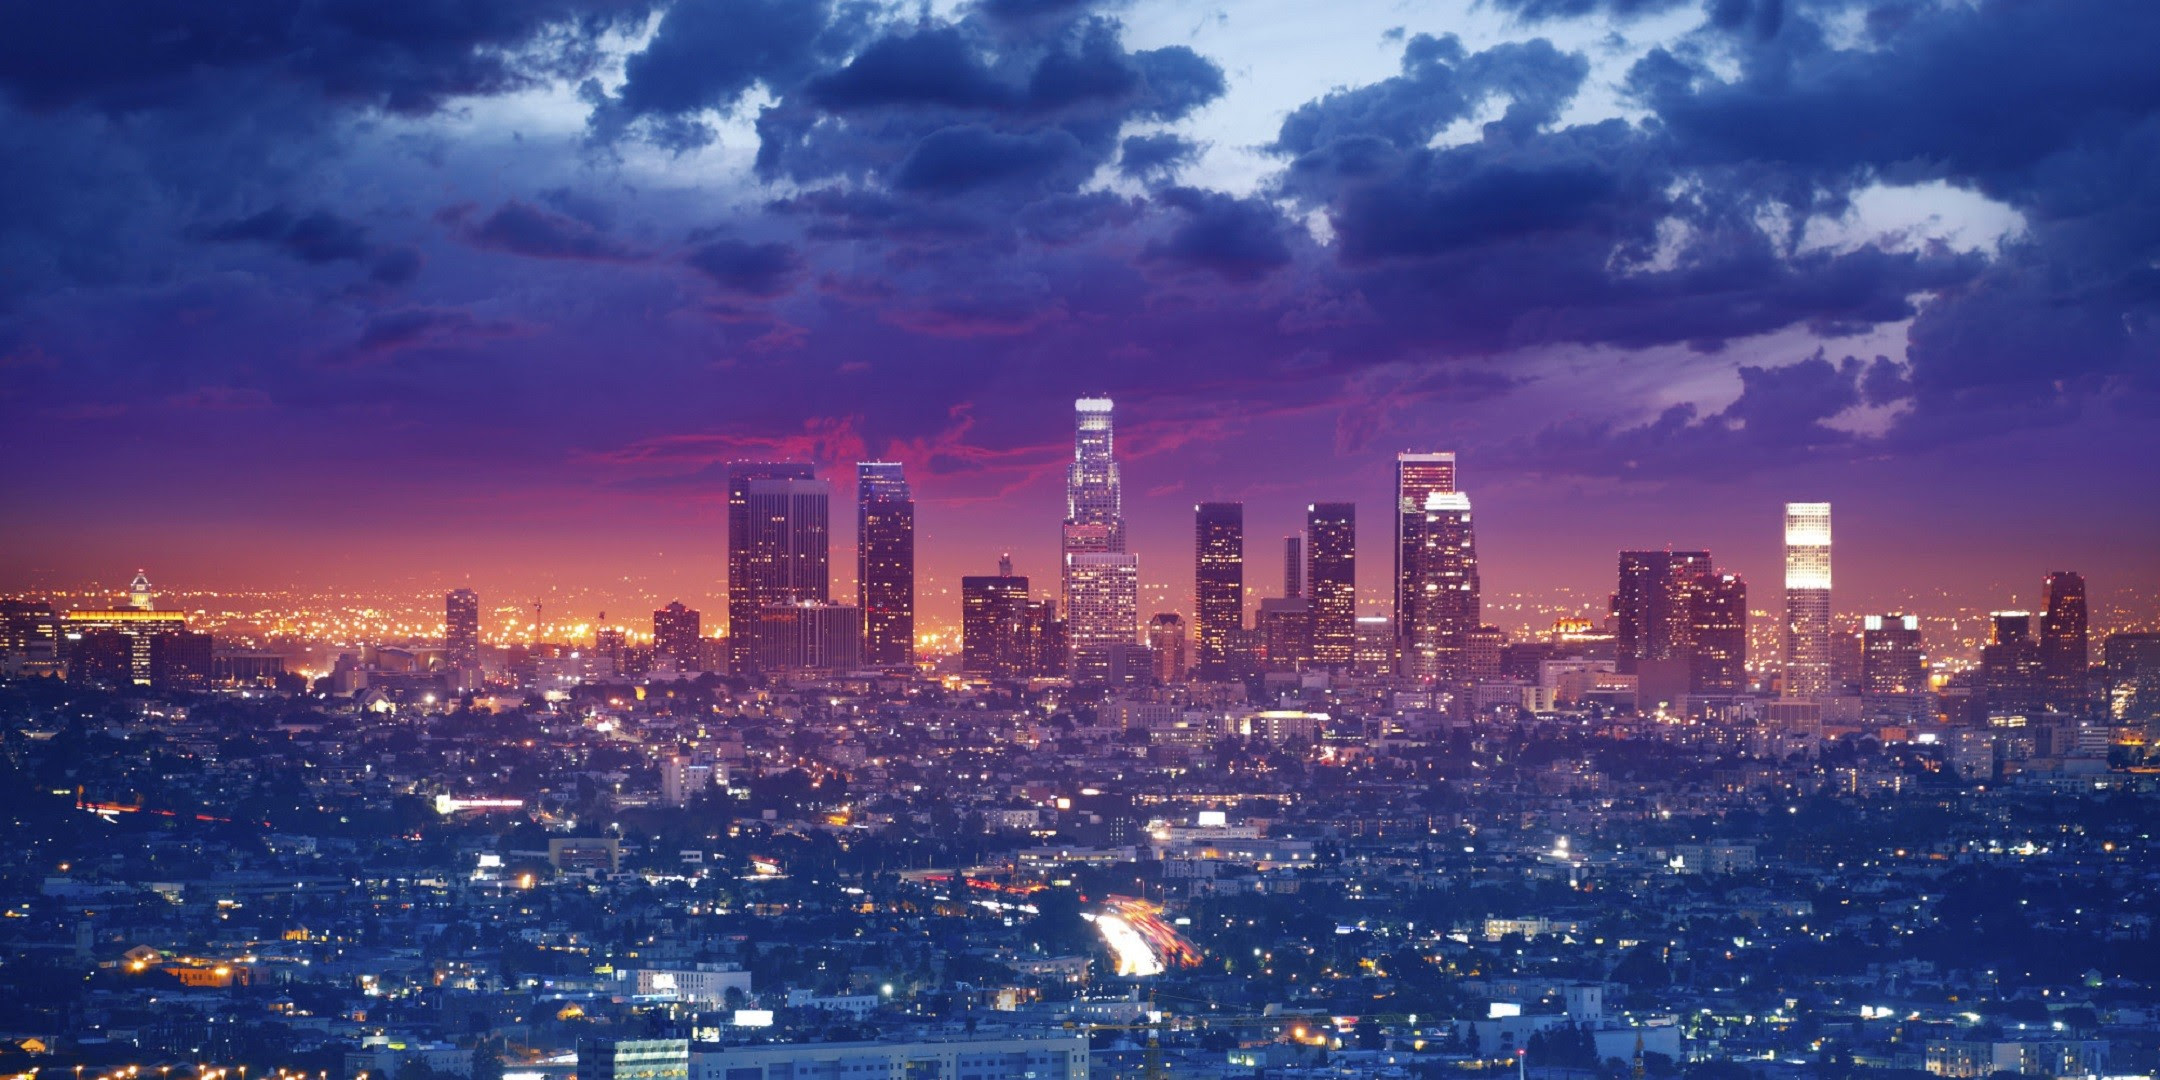 Los Angeles 4K Wallpaper 56+ images